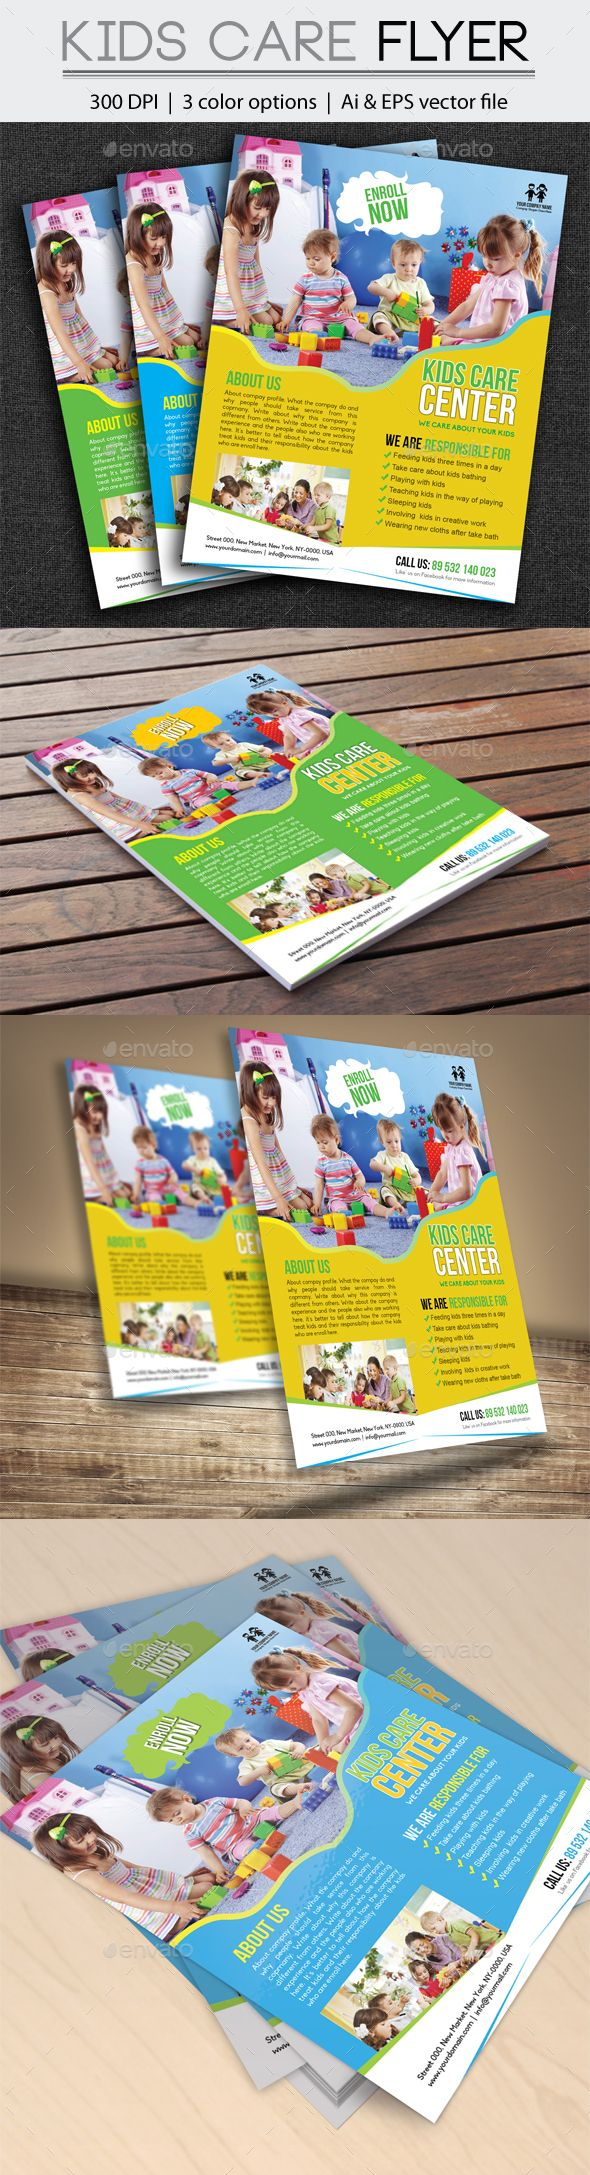 best ideas about advertisement template wedding graphicriver kids care flyer advertisement announcement baby babyflyer born